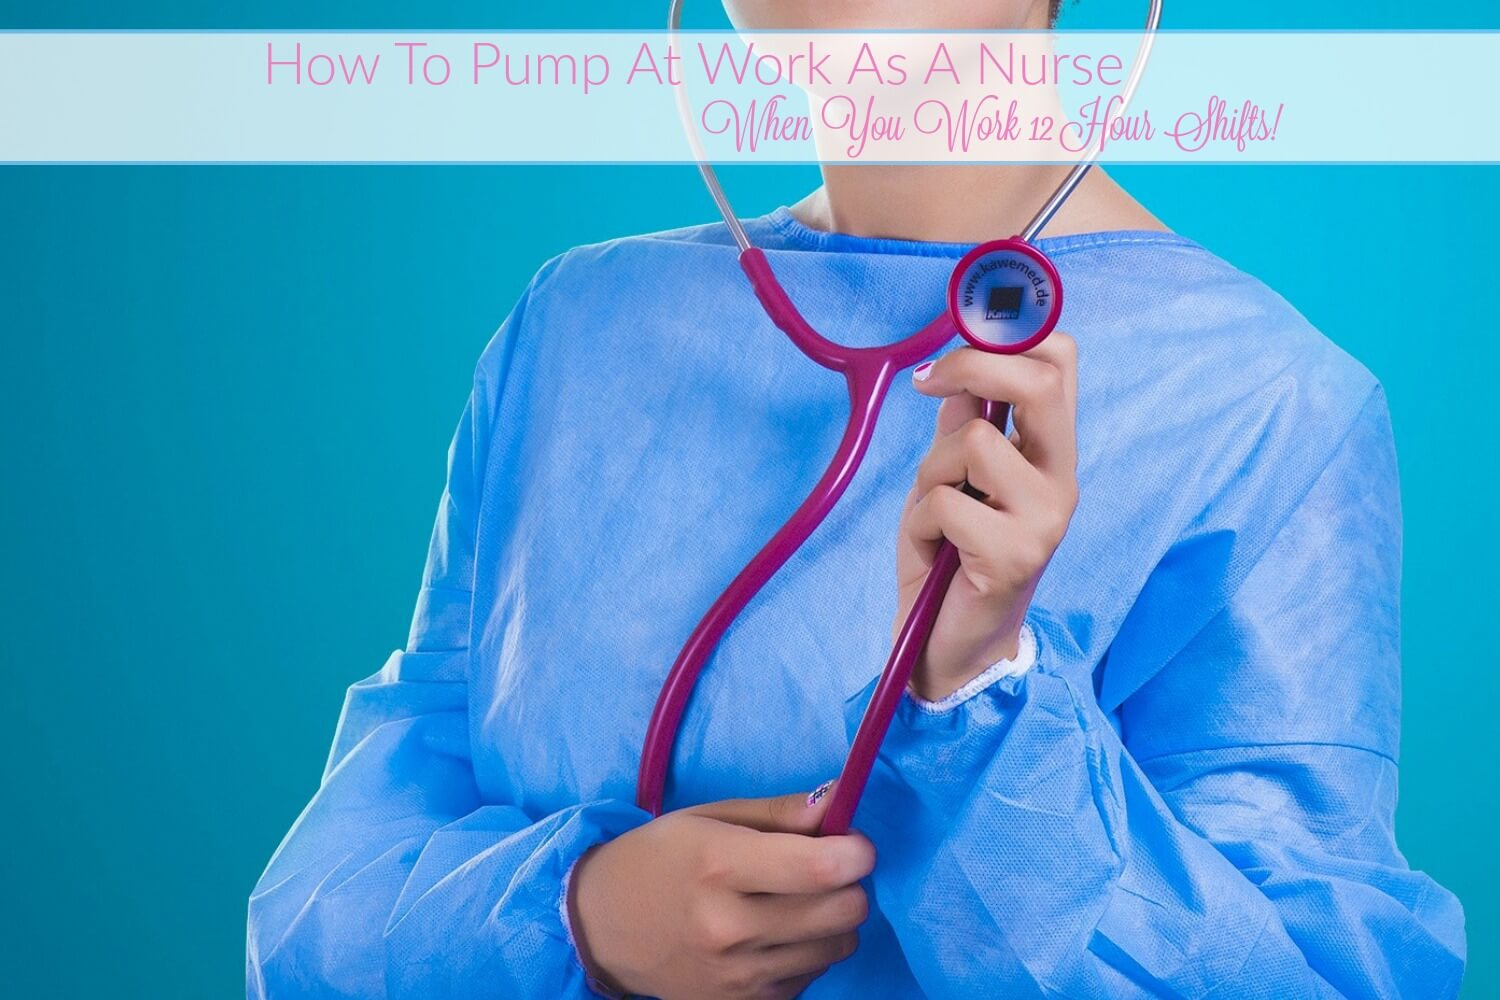 How To Pump At Work As A Nurse